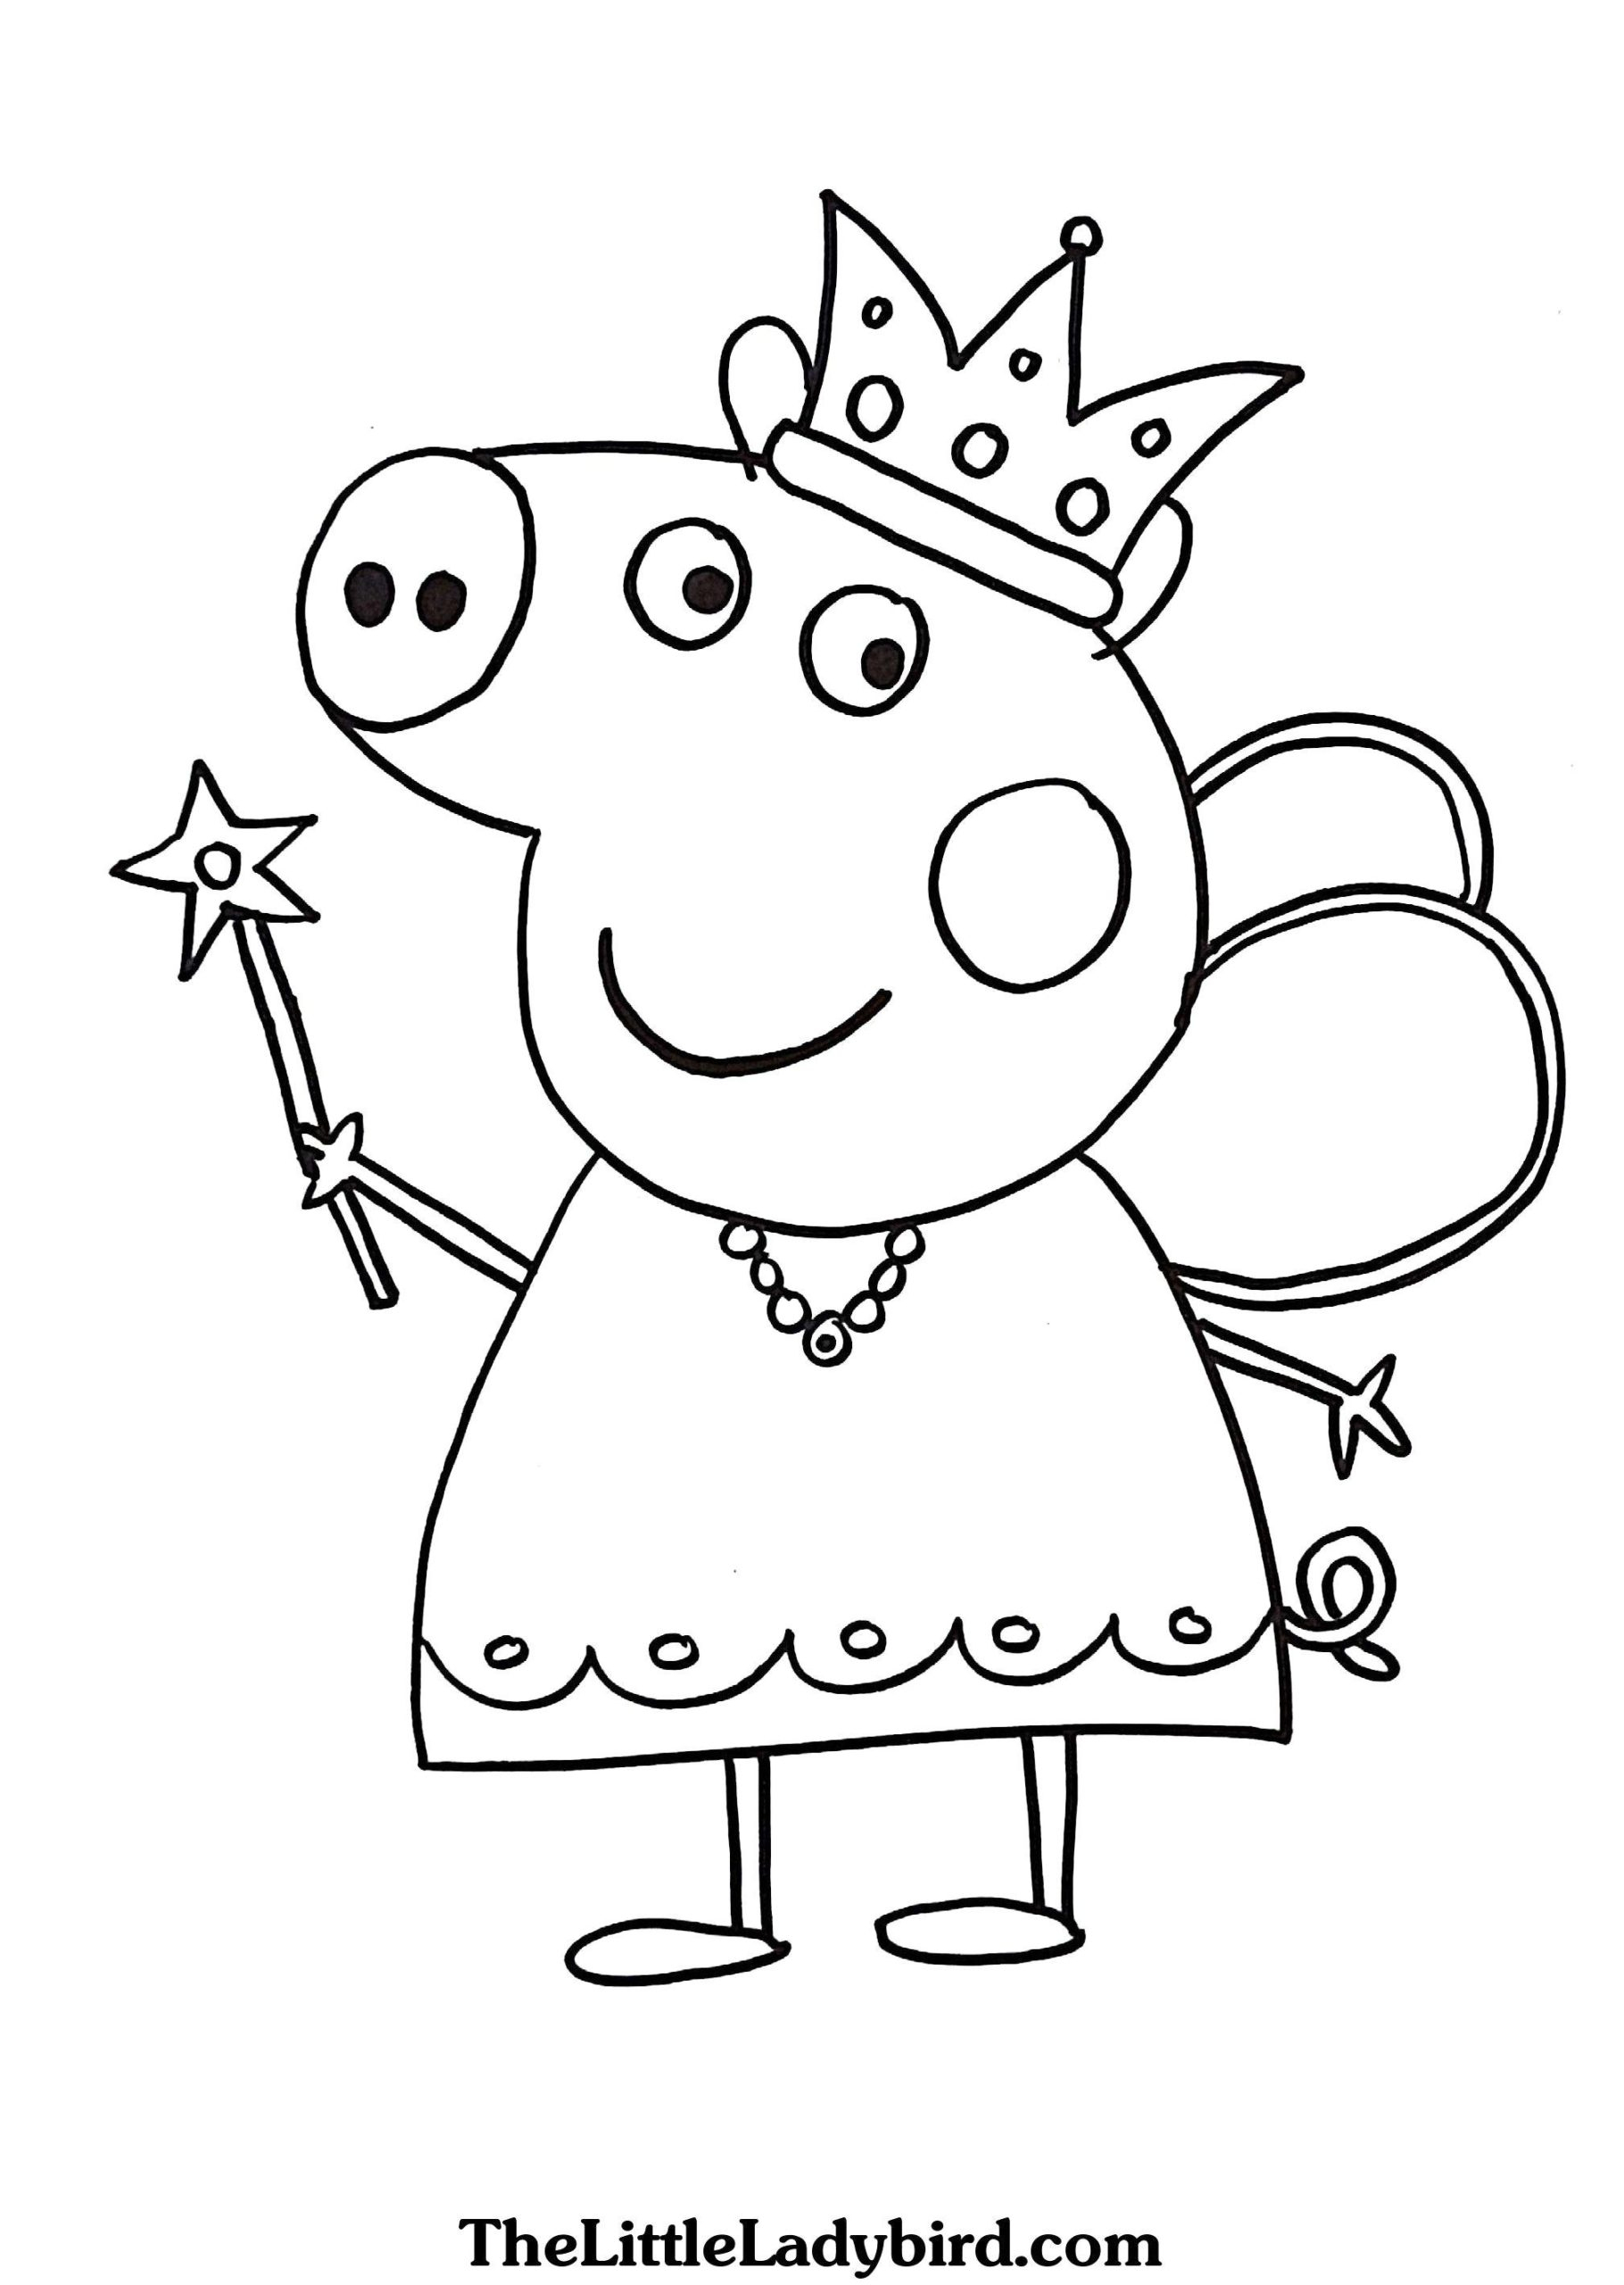 Coloring Pages : Marvelous Of Pig Coloring Peppa Hey Arnold à Peppa Pig A Colorier